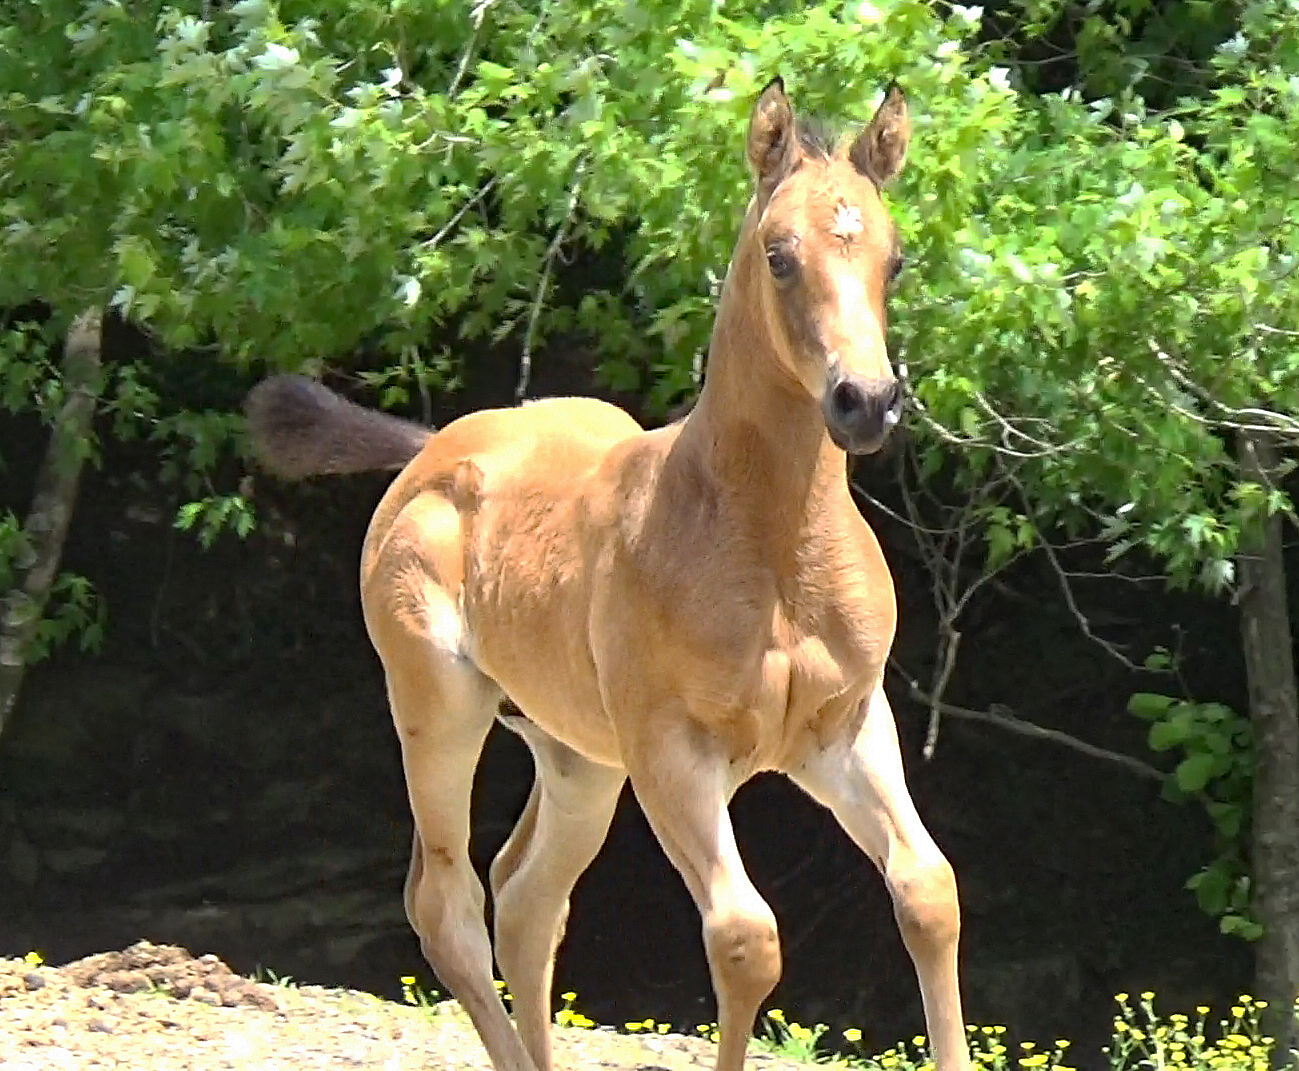 Steel Dust DH, 2019 Half Arabian Colt - This buckskin beauty has the good looks and great mind that we all love. He is pretty, correct and a good mover. He is a natural for the Western, Ranch and Trail classes that are getting so popular.